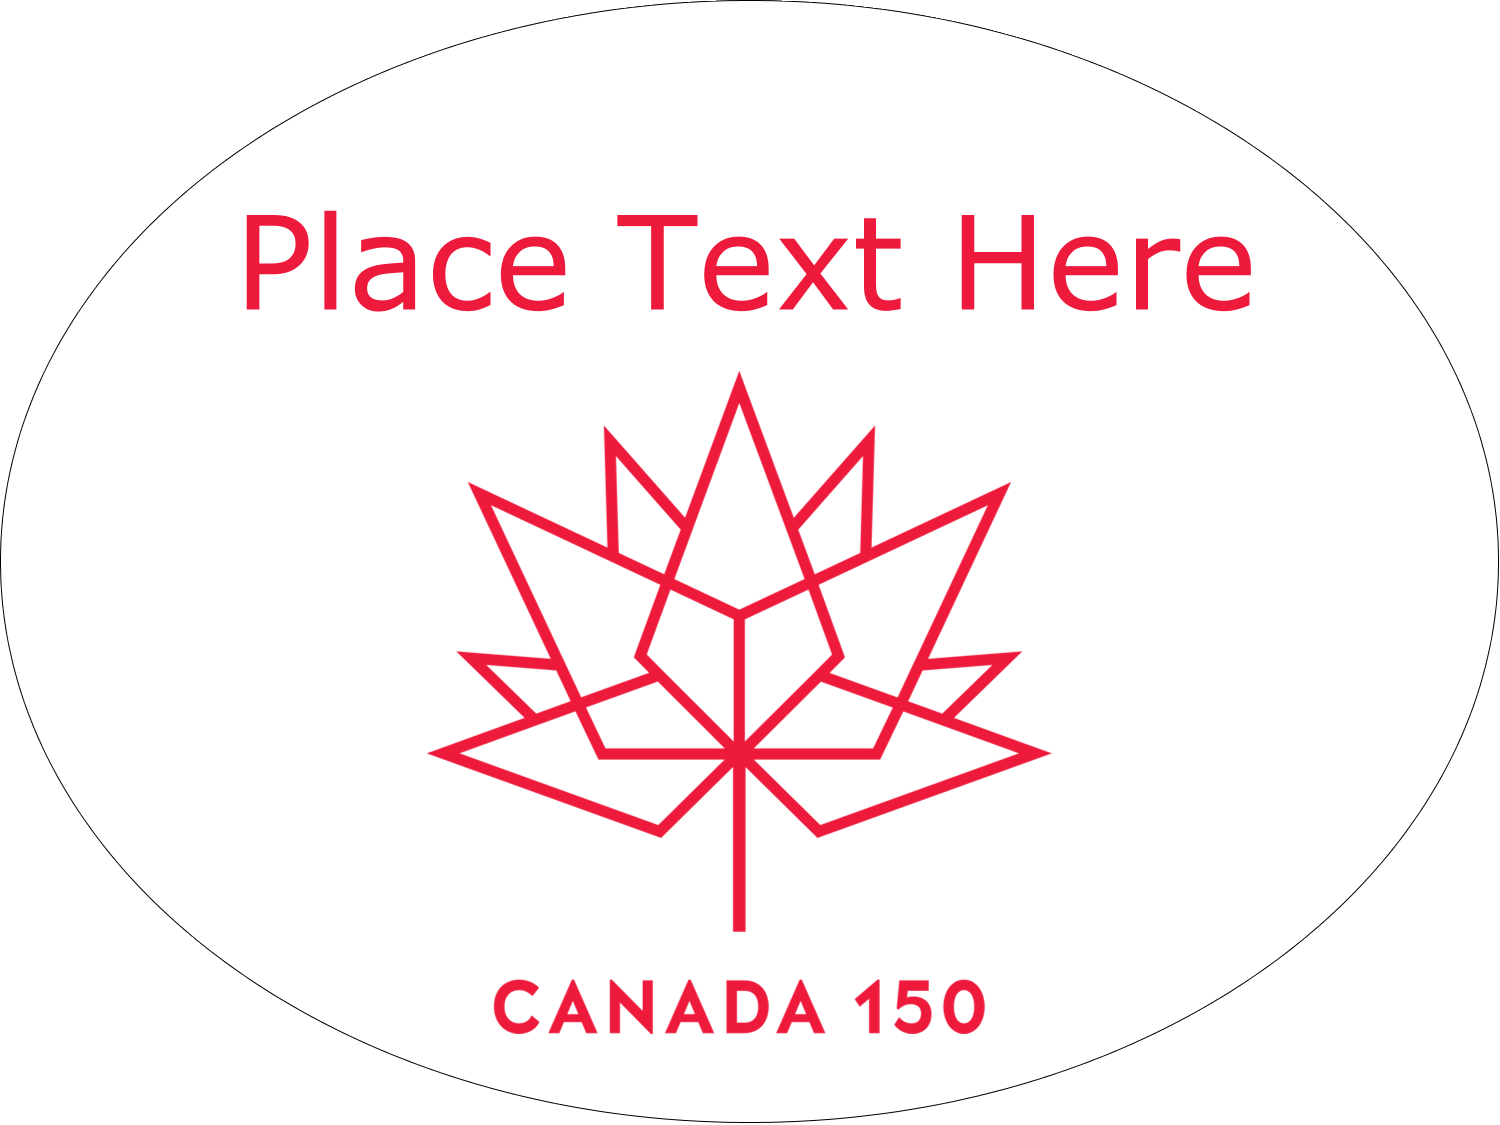 Celebrate Canada's 150th anniversary with an evocative symbol and a reminder of Canada's history!